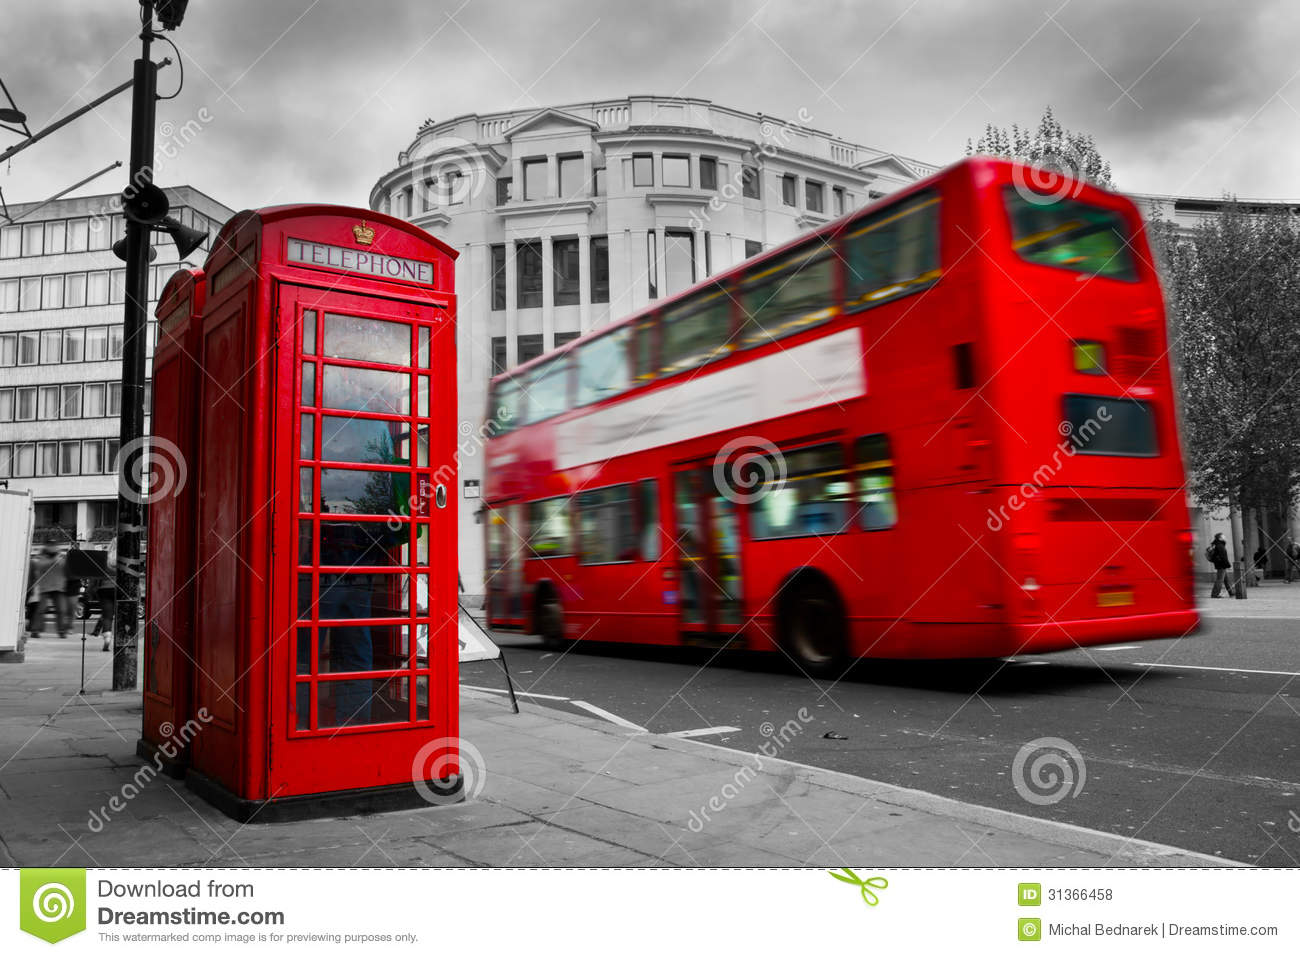 London, the UK. Red phone booth and red bus